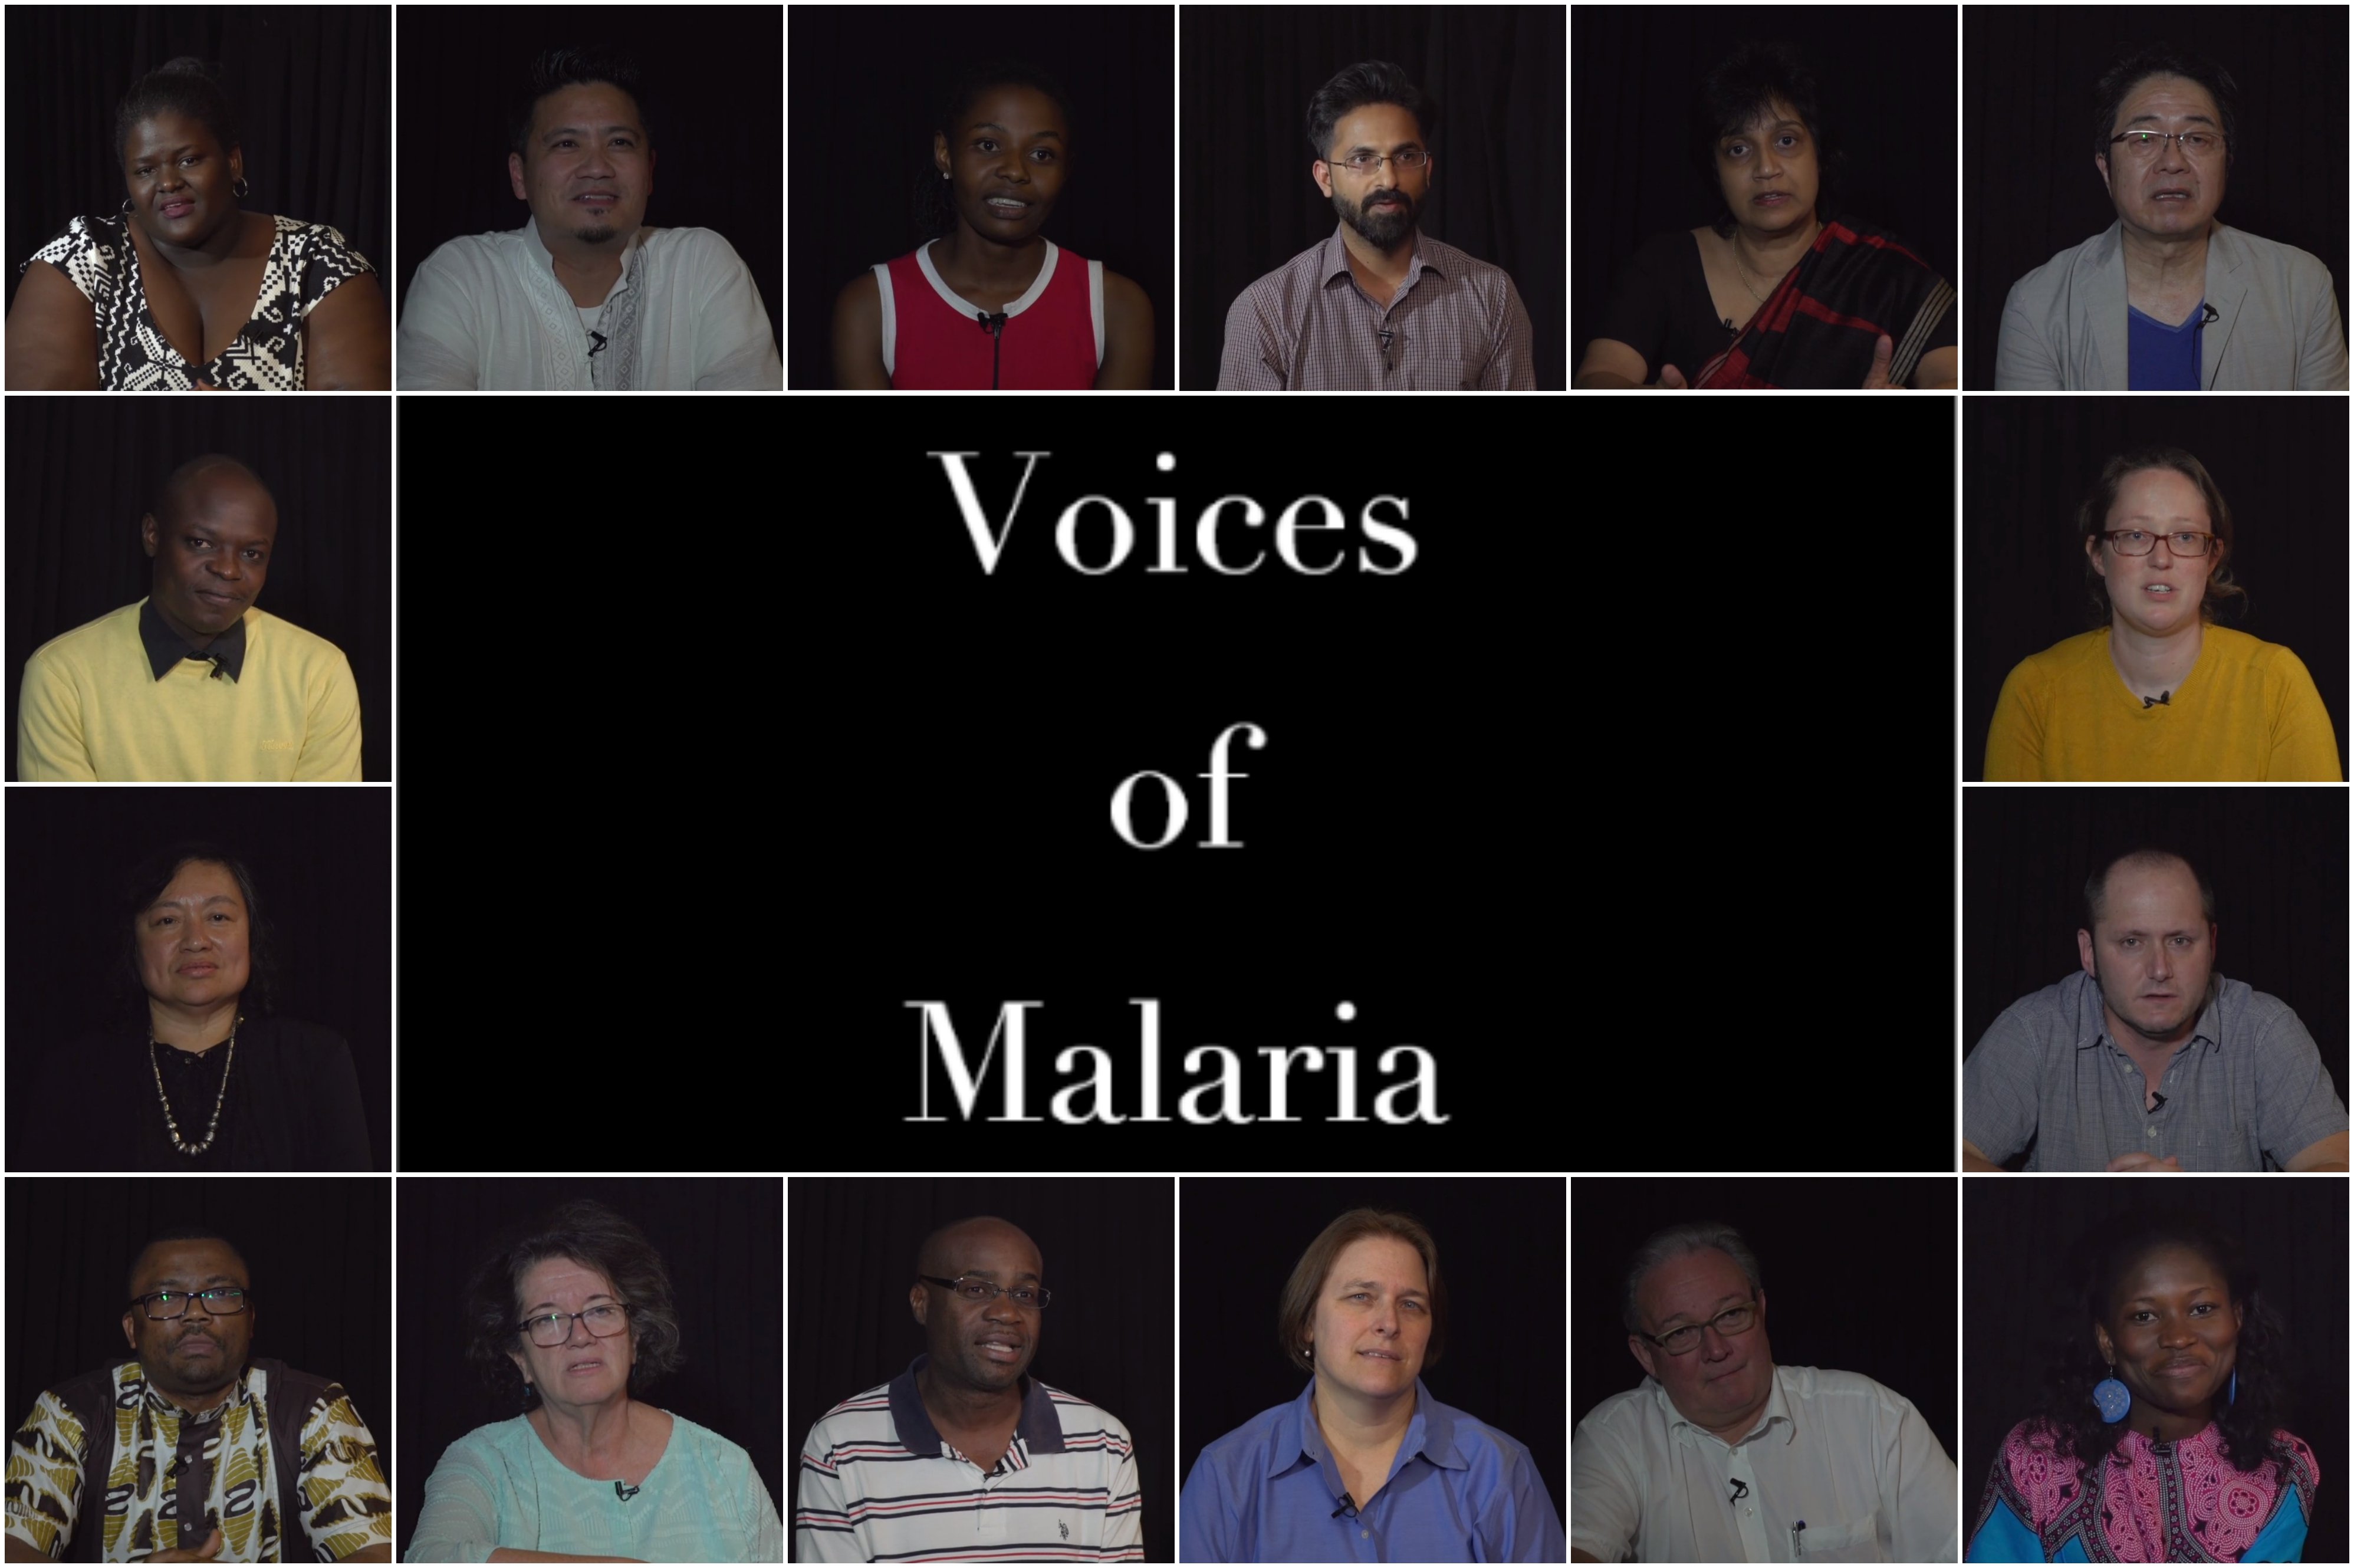 Voices of Malaria